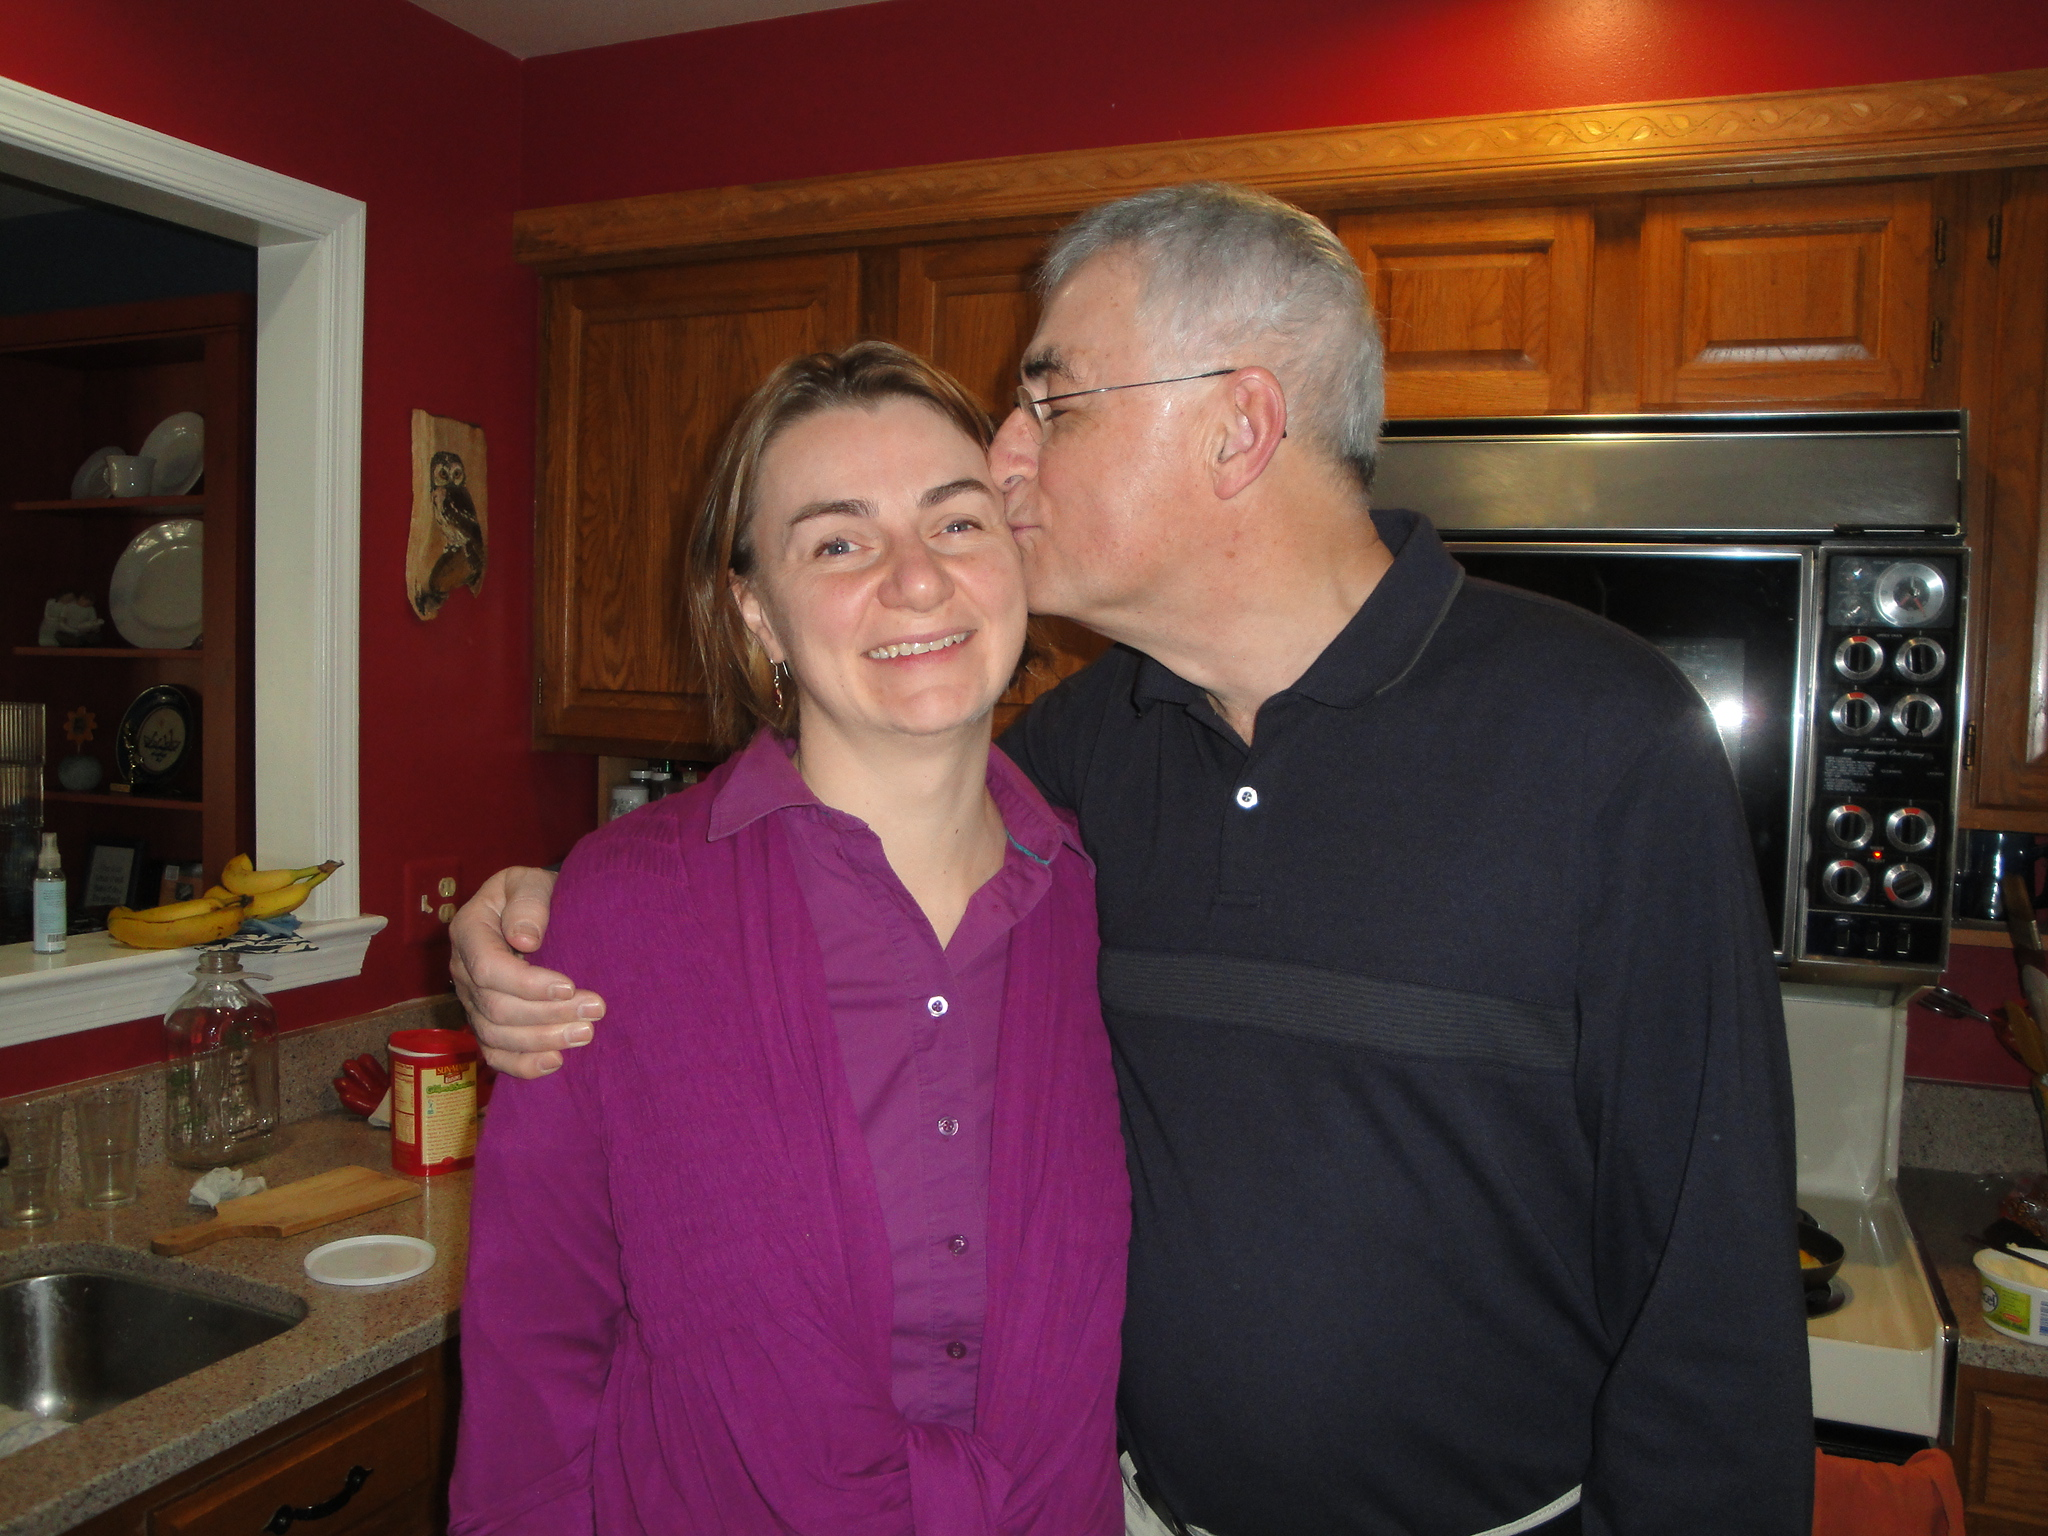 Me and my dad, January 2012